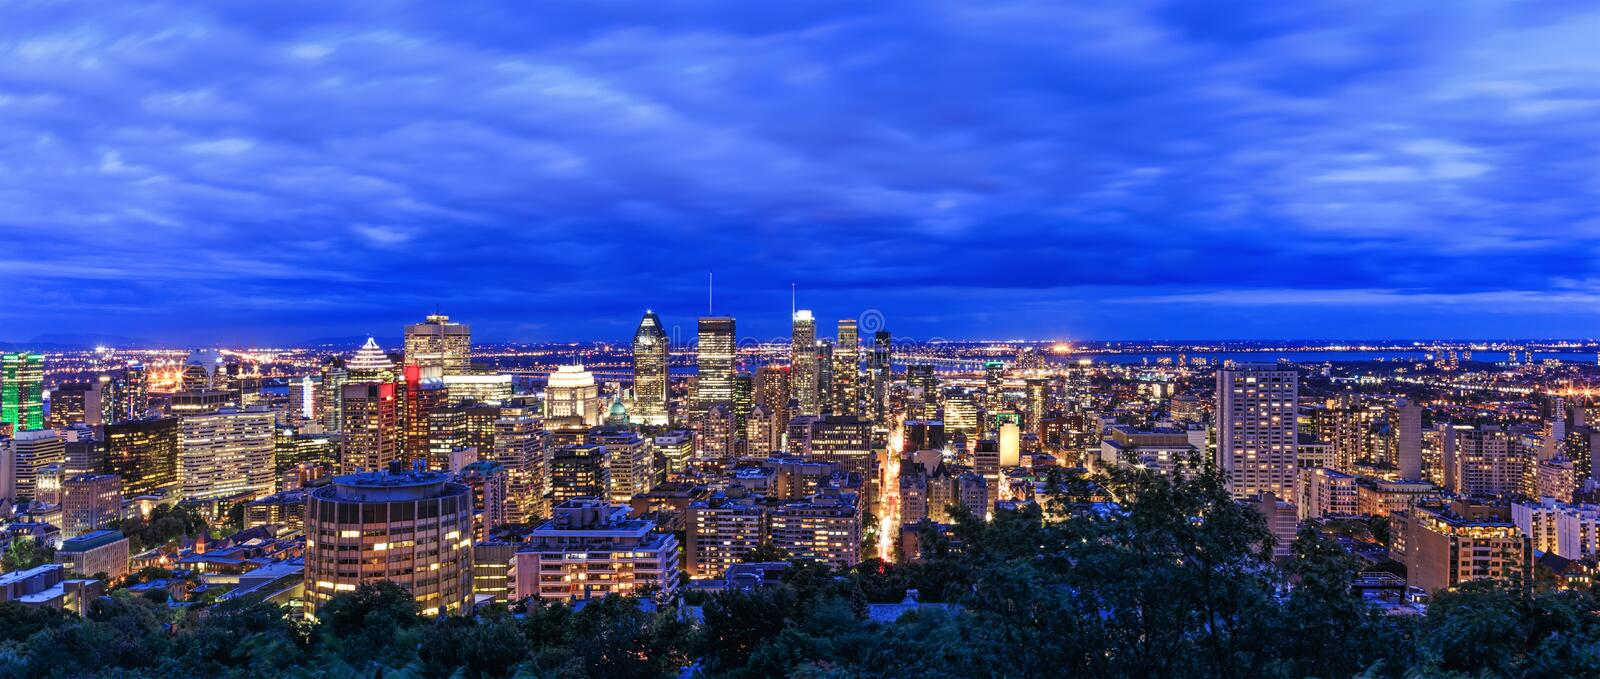 Montreal view at sunrise or sunset time with blue sky. Panoramic skyline of Canadian city. Beautiful night clouds over Montreal. Downtown buildings. Amazing royalty free stock photos